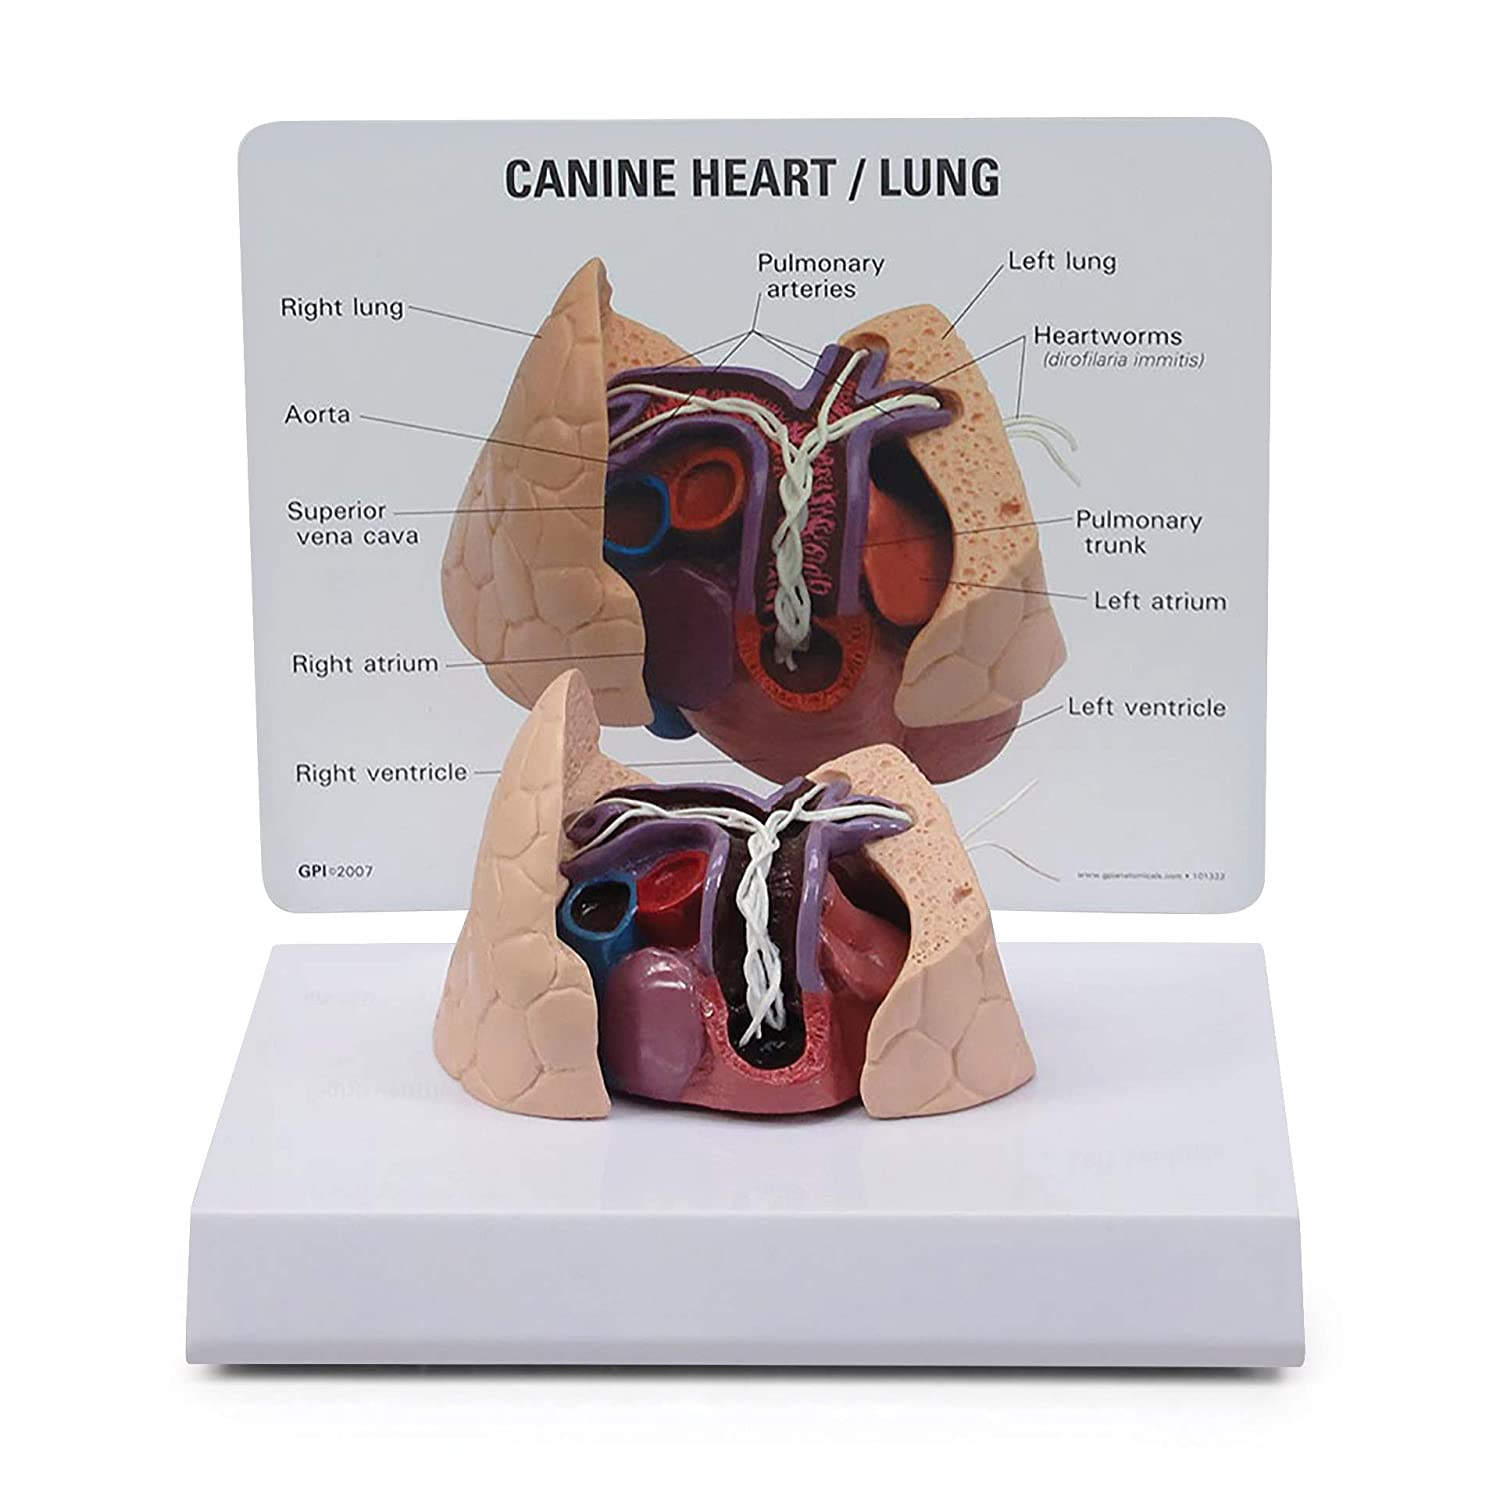 Canine Heart & Lung Model | Animal Body Anatomy Replica of Dog Heart & Lungs w/Heartworms for Veterinary Office Educational Tool | GPI Anatomicals